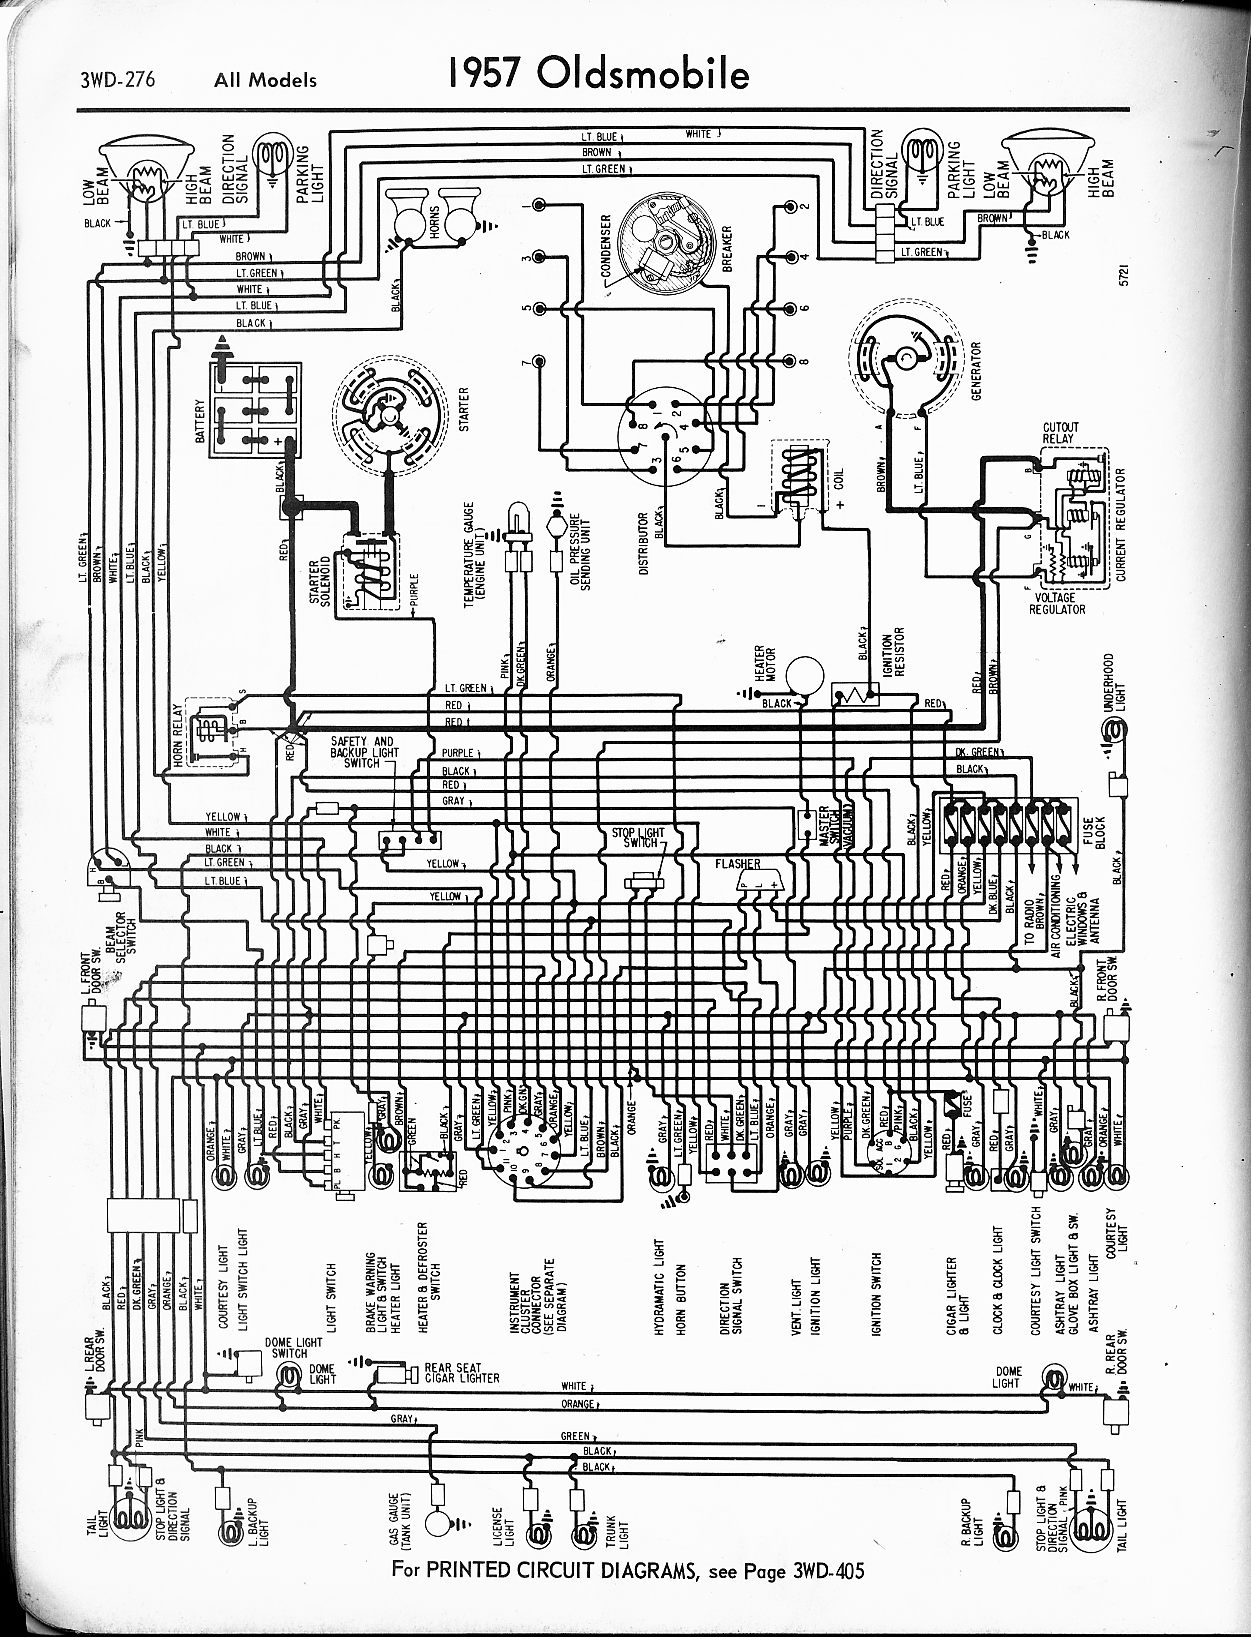 MWire5765 276 oldsmobile wiring diagrams the old car manual project  at bakdesigns.co